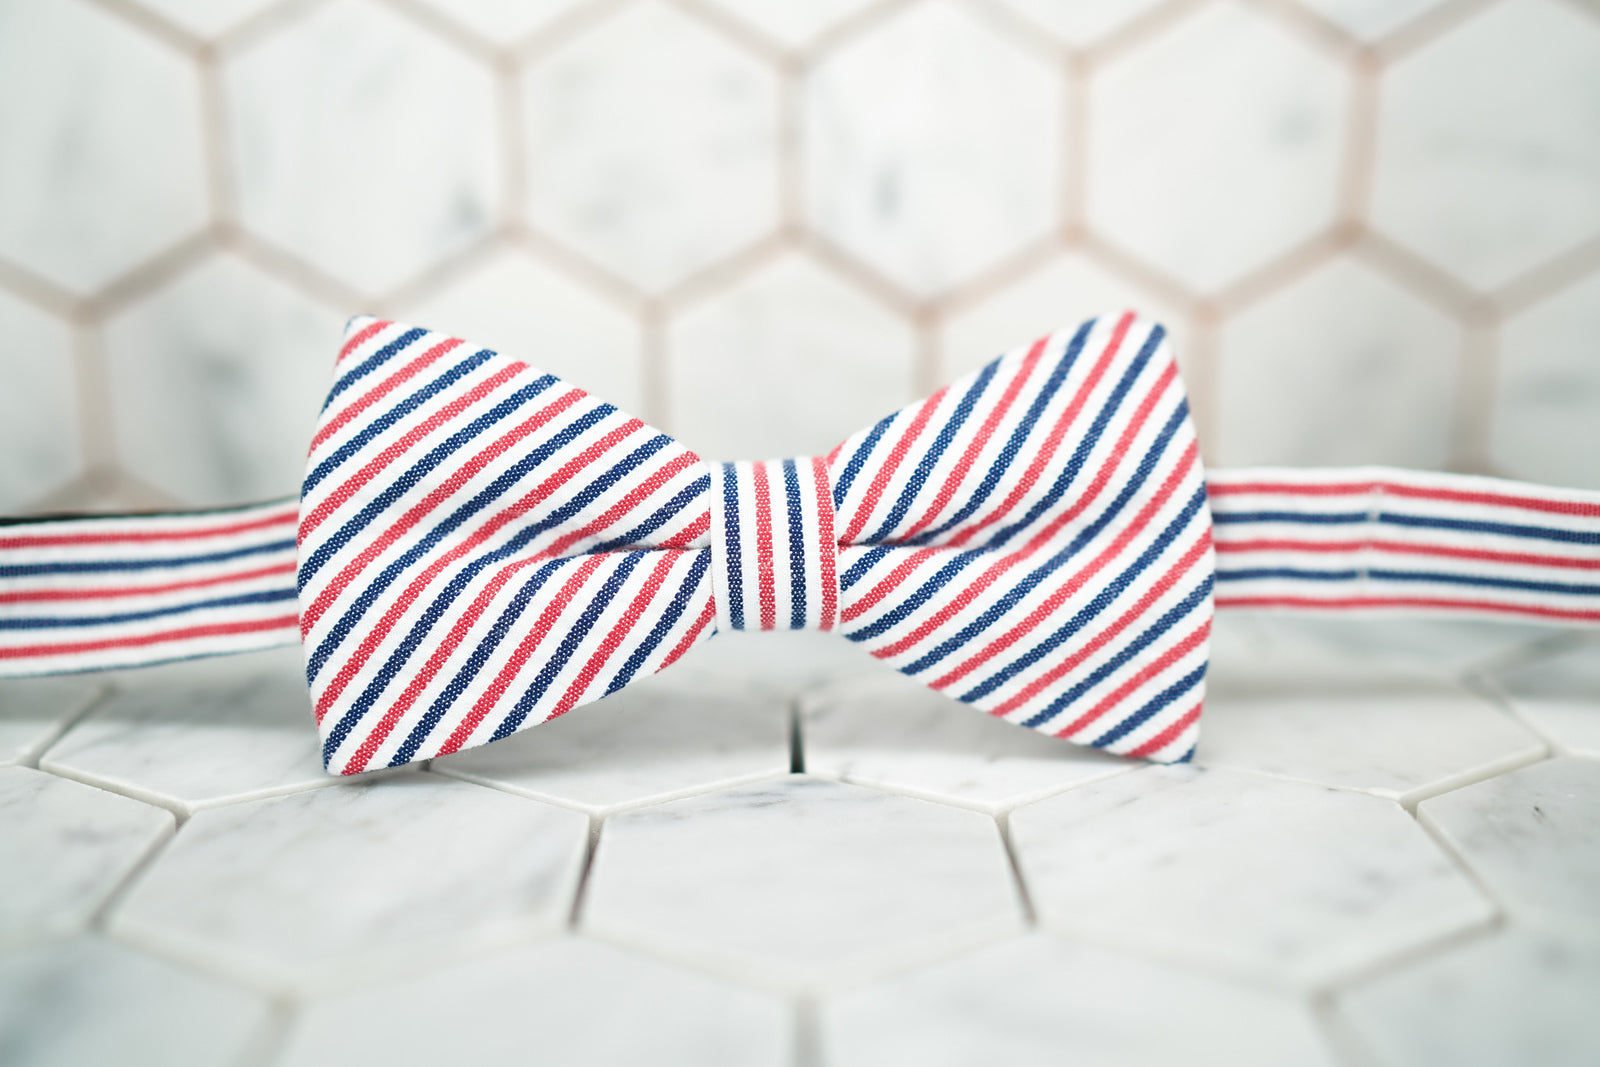 A beautifully handmade patriotic seersucker bow tie by Dear Martian.